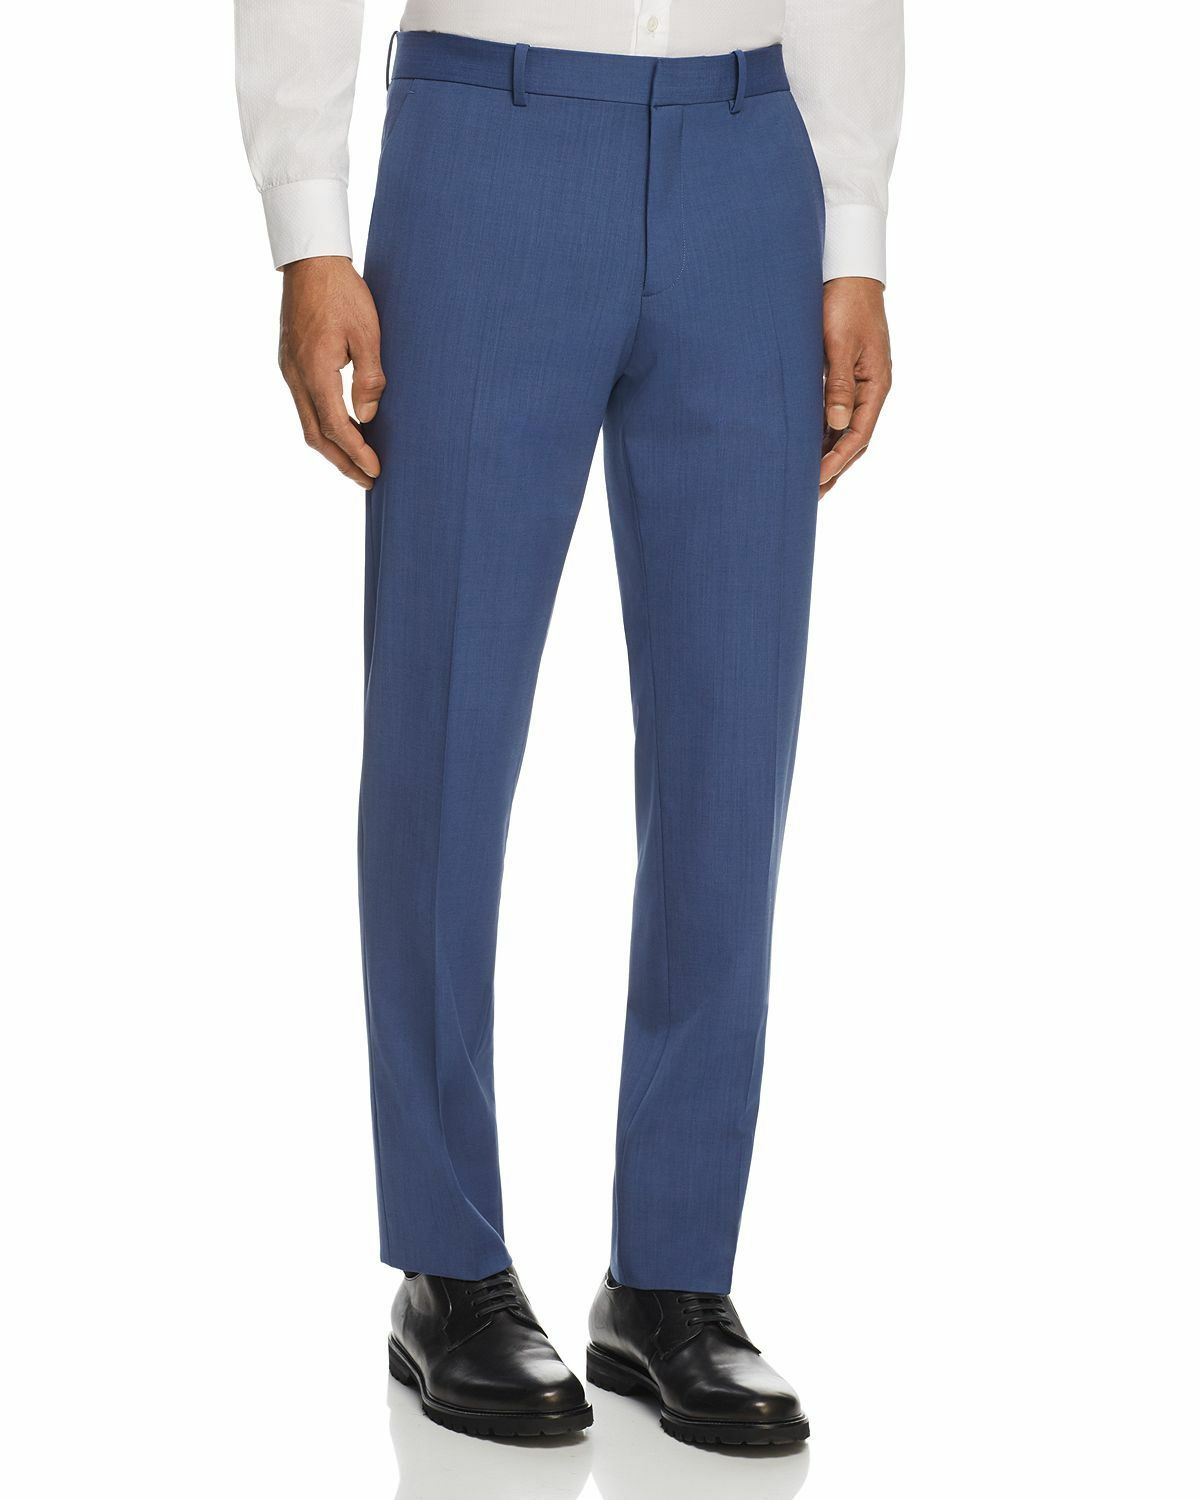 Theory Mens blueE SLIM FIT WOOL SUIT DRESS FLAT TROUSER PANTS 36W 29L